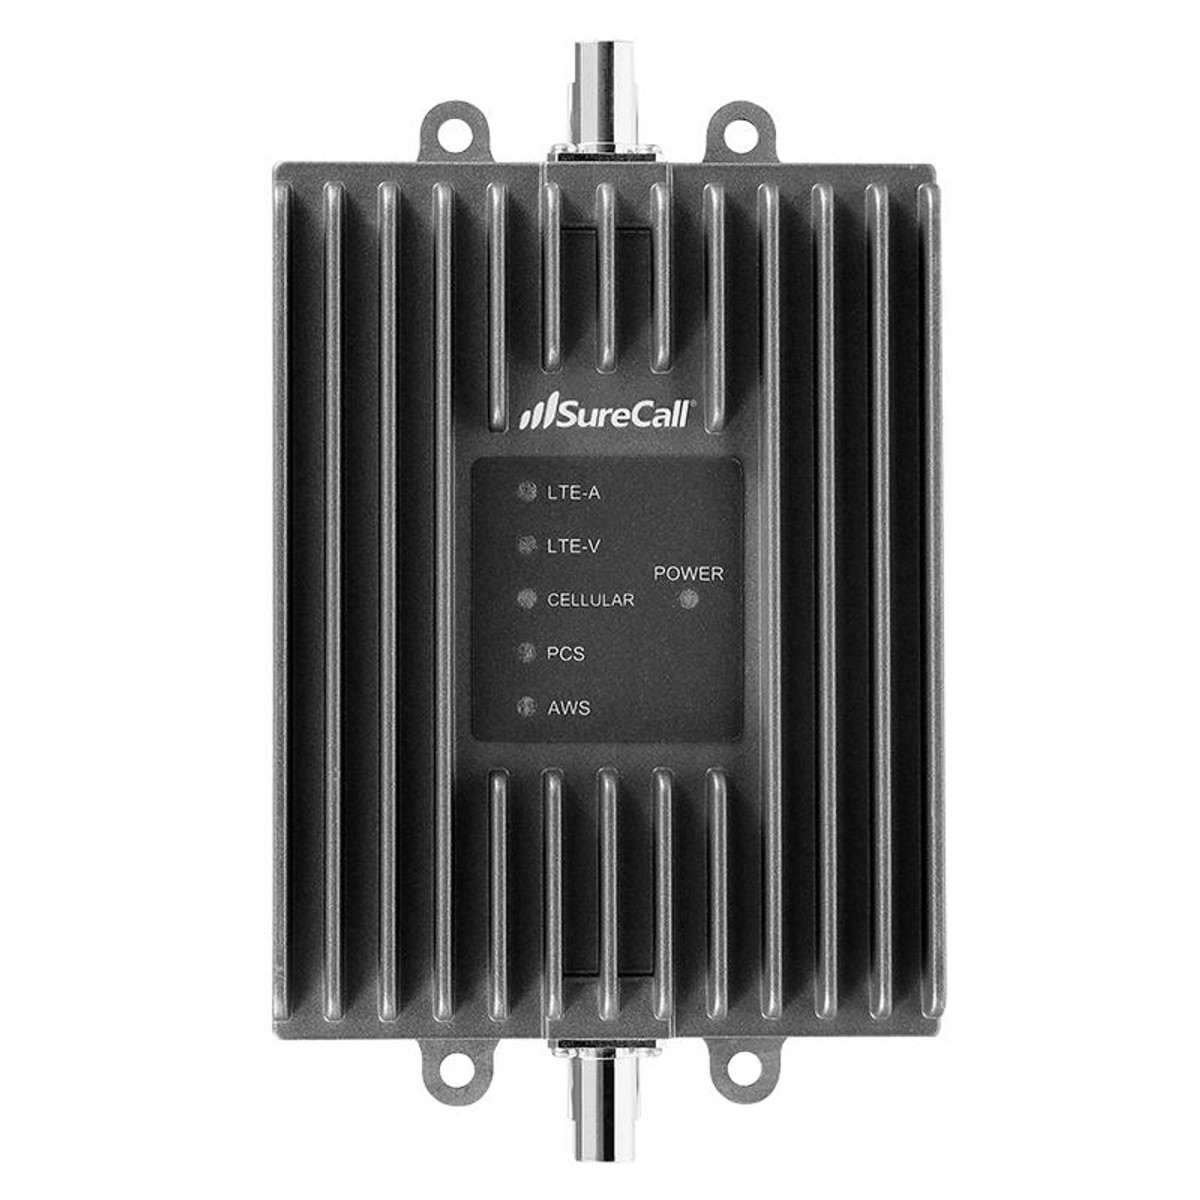 SureCall SureCall Fusion2Go 3.0 Vehicle Cell Phone Signal Booster Kit